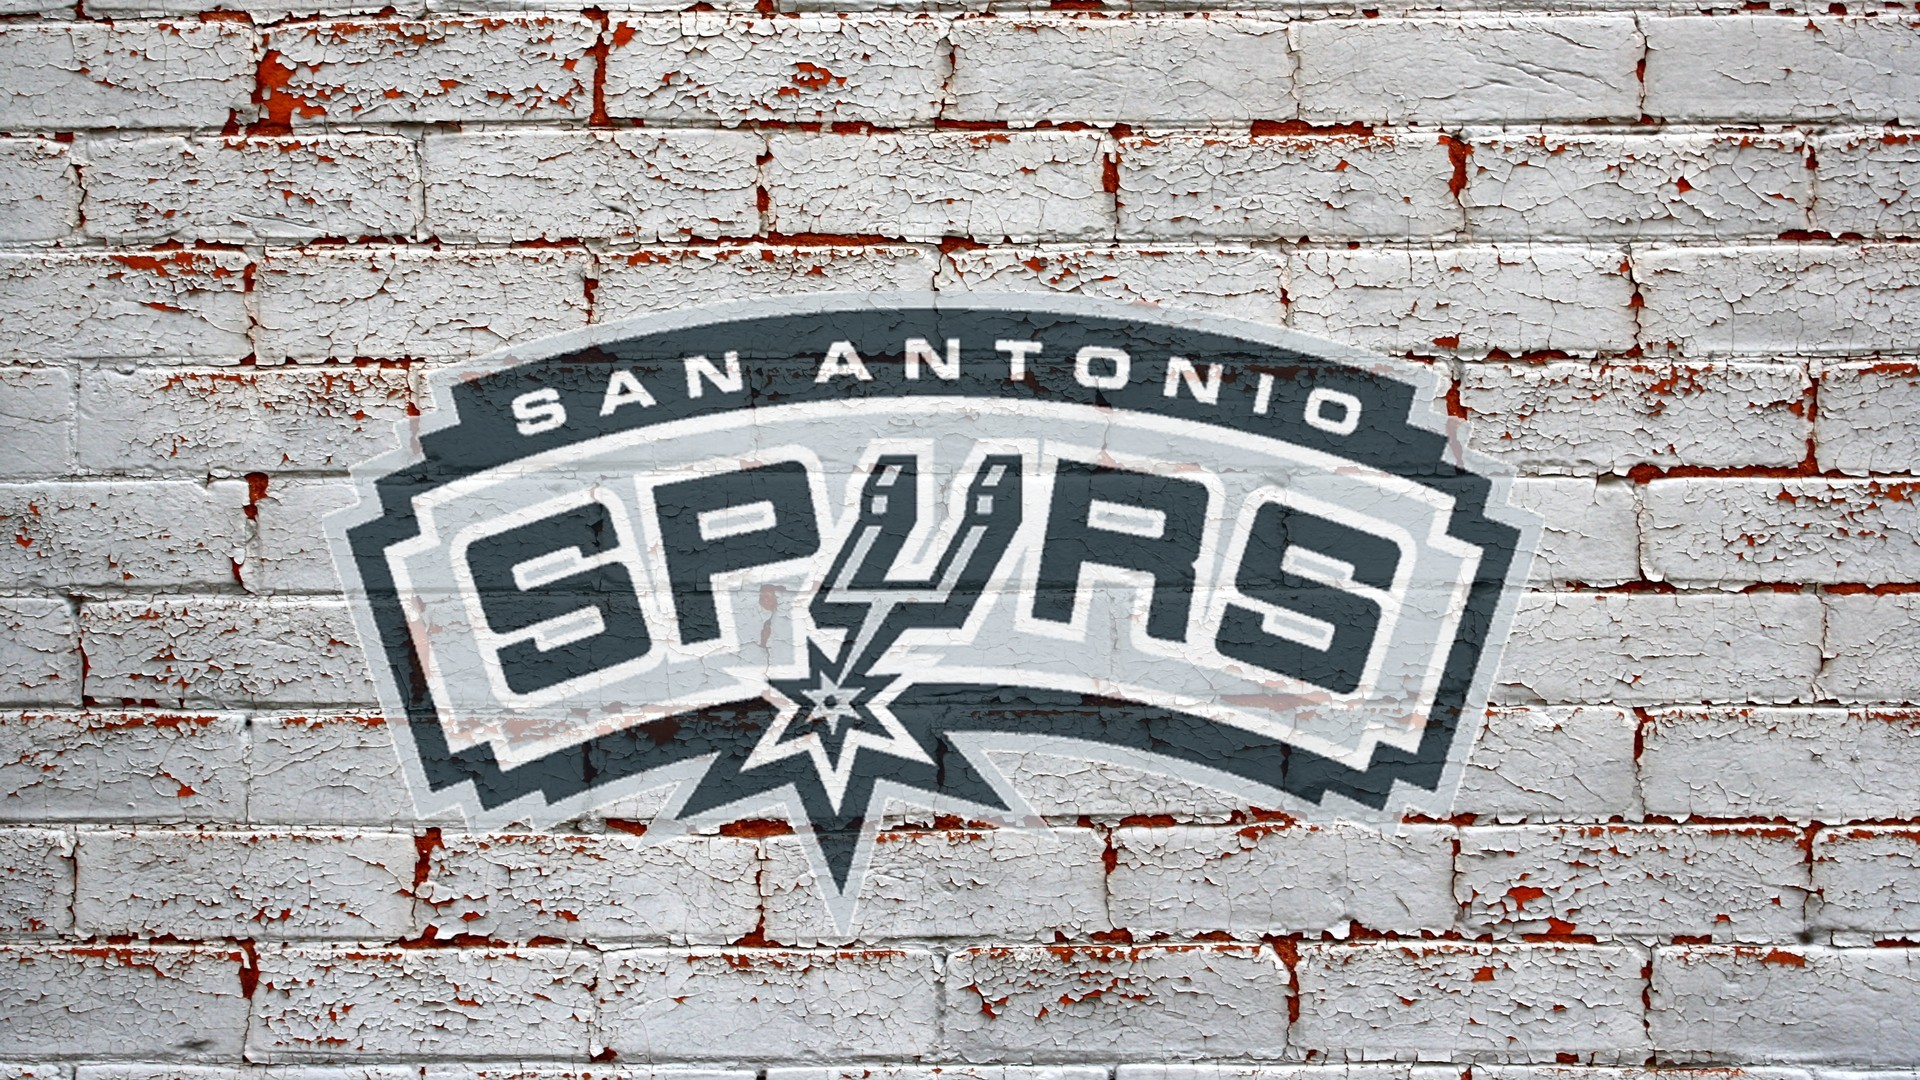 1920x1080 - San Antonio Spurs Wallpapers 18